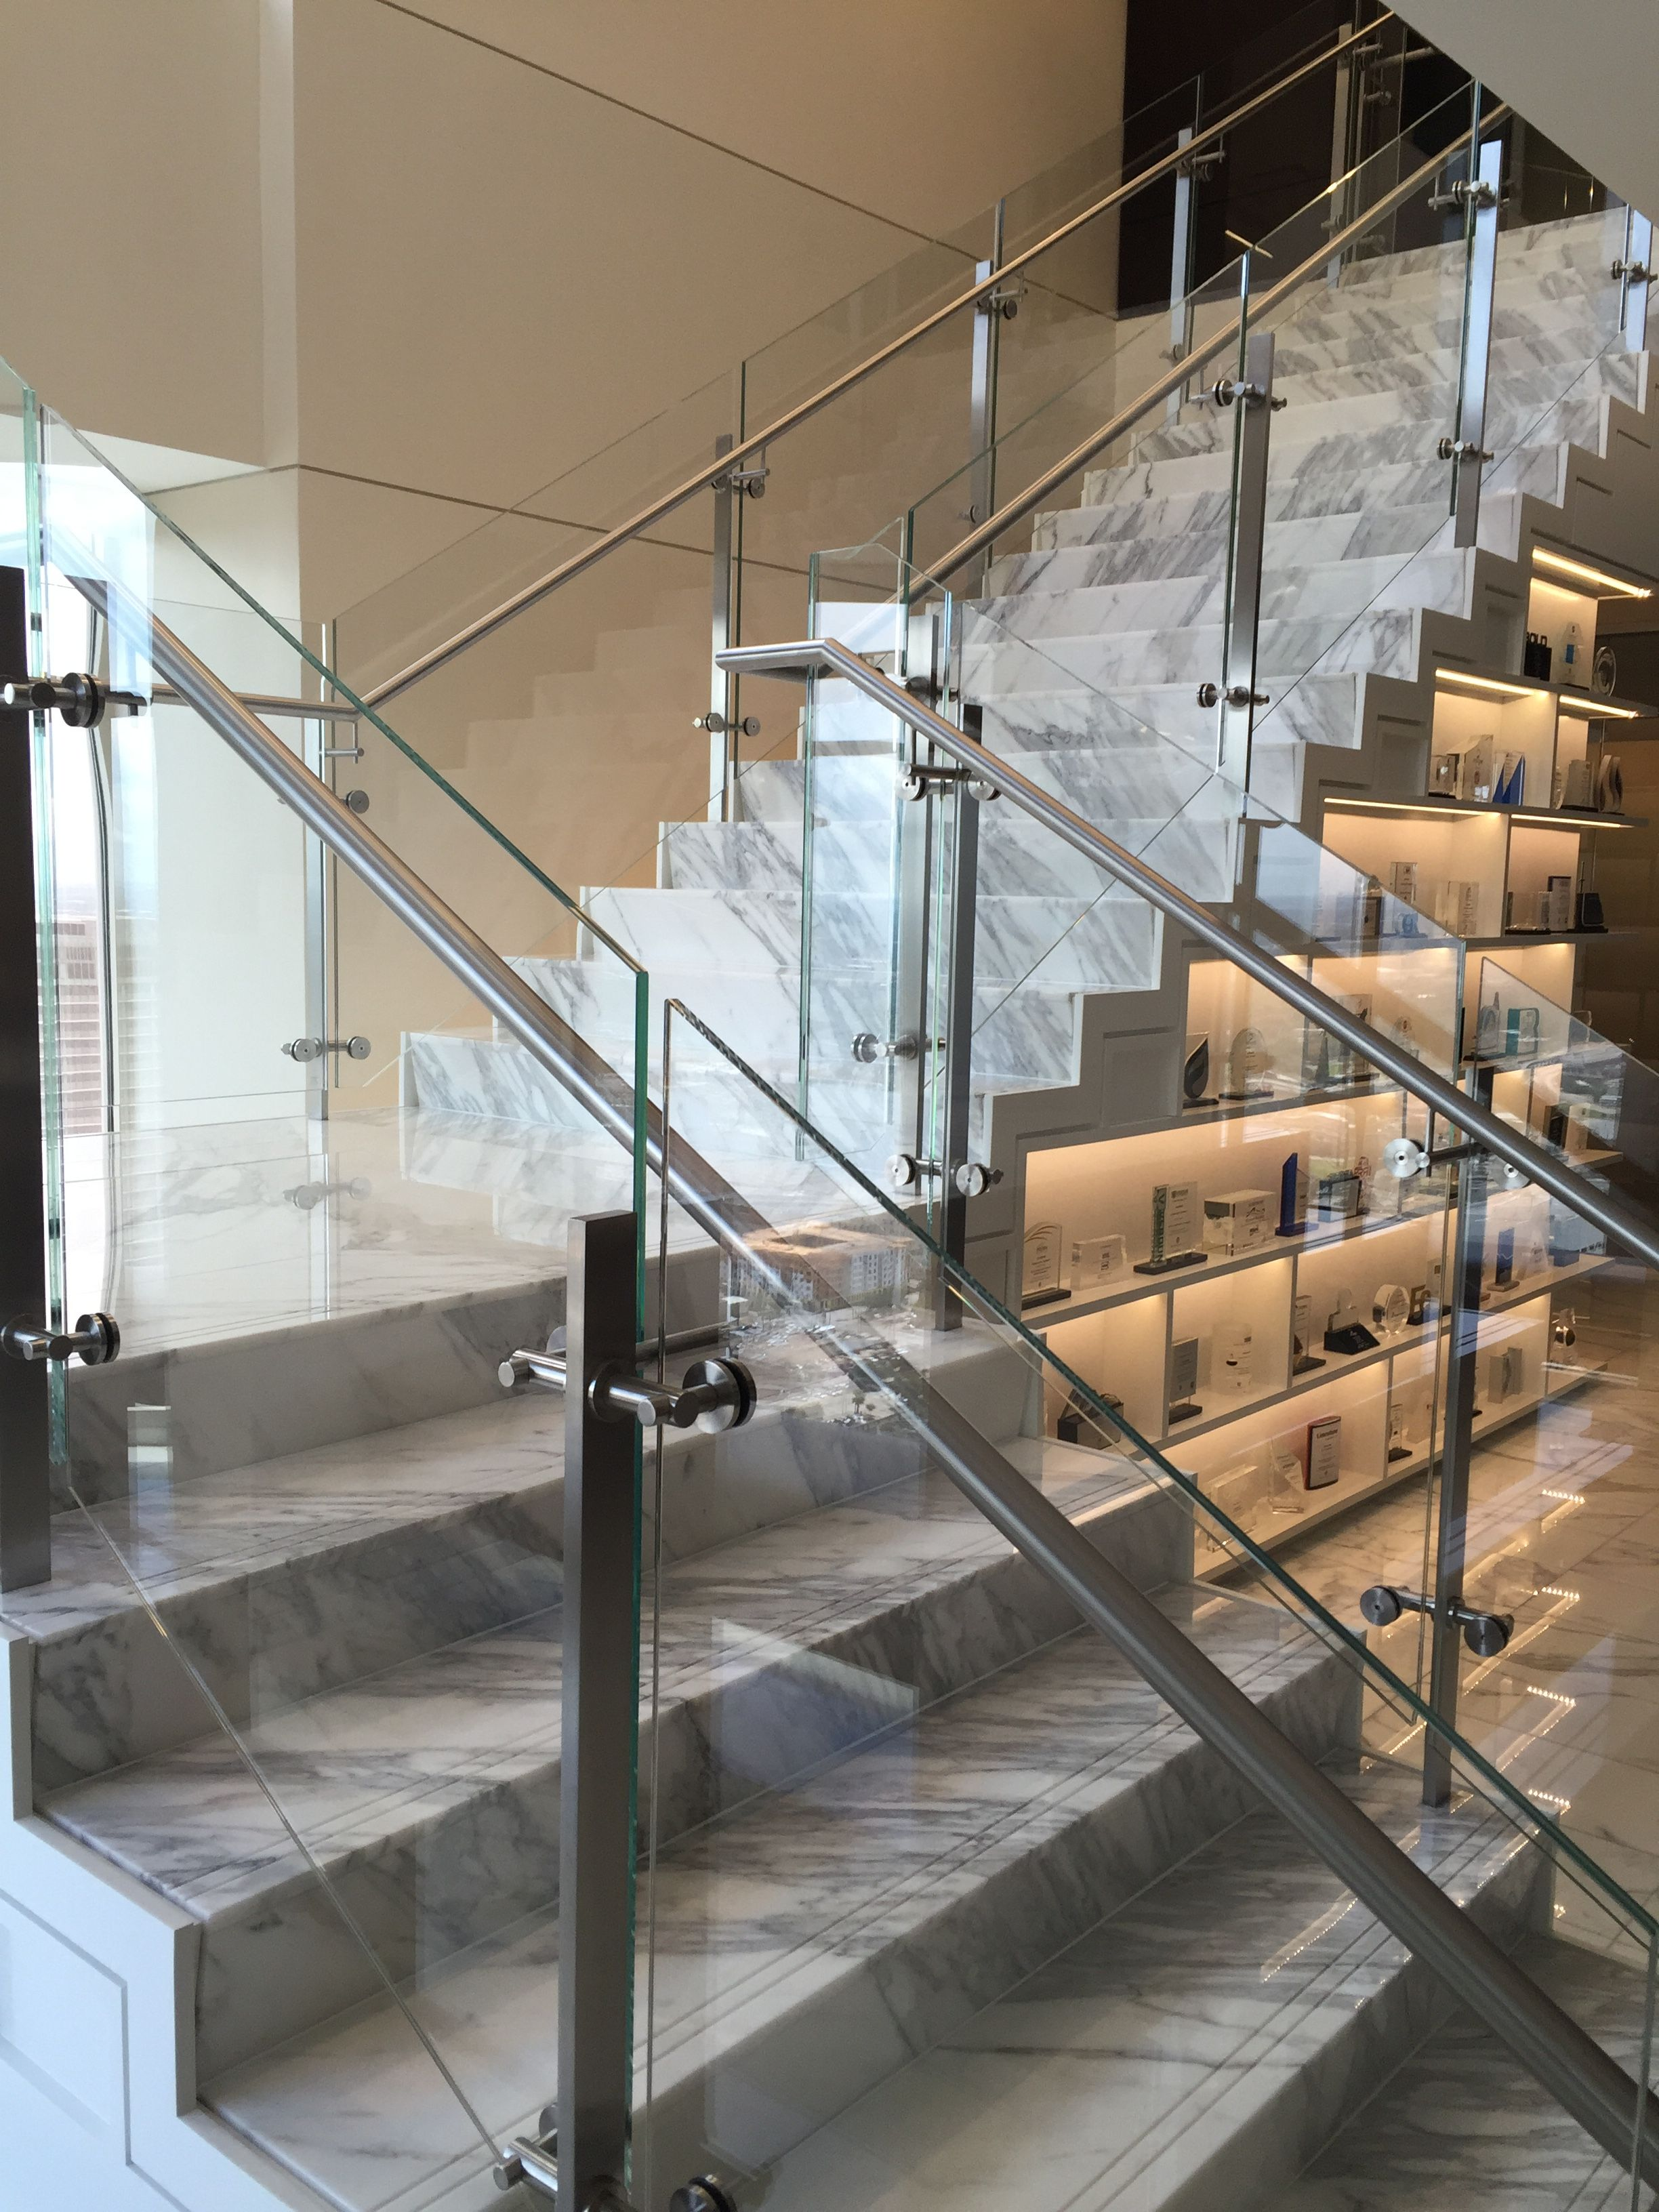 Glass Railing With Stainless Steel Glass Clamps Stairs Design | Stair Railing Design Modern With Glass | L Shape | Interior Residential Metal | Simplistic | Grill | Button Glass